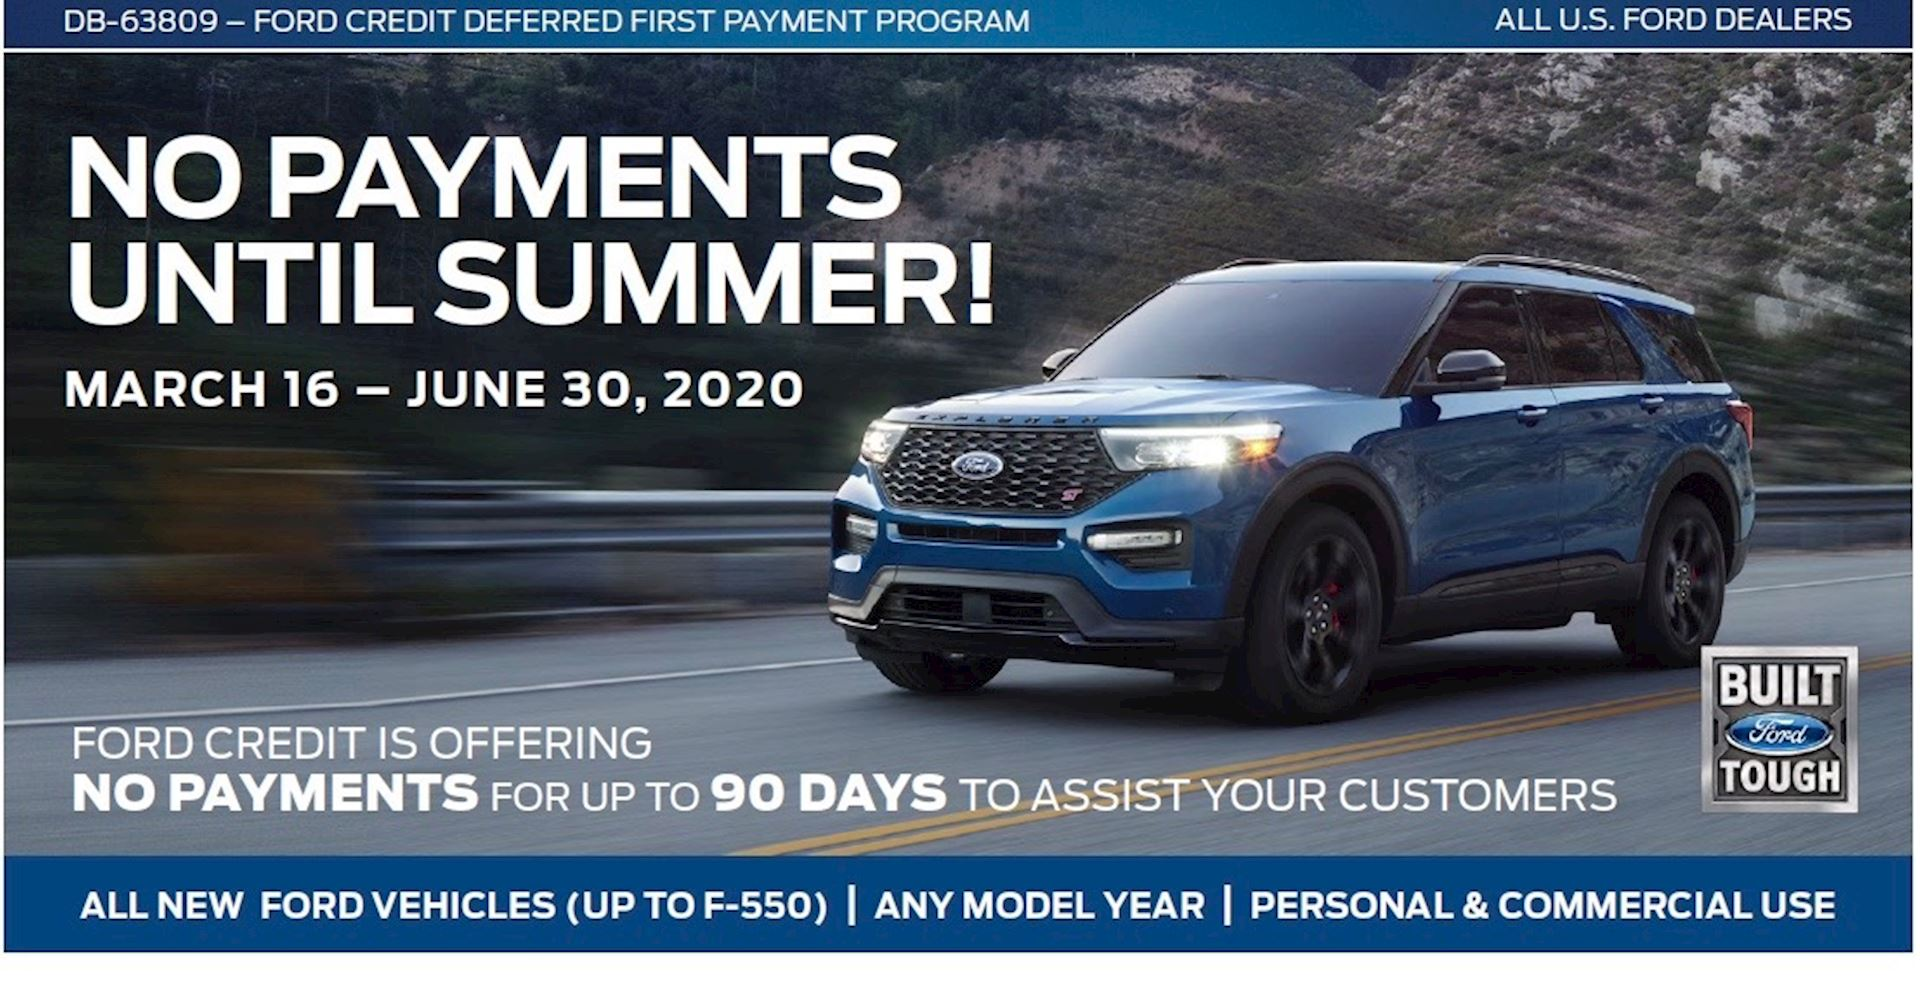 NO PAYMENTS UNTIL SUMMER